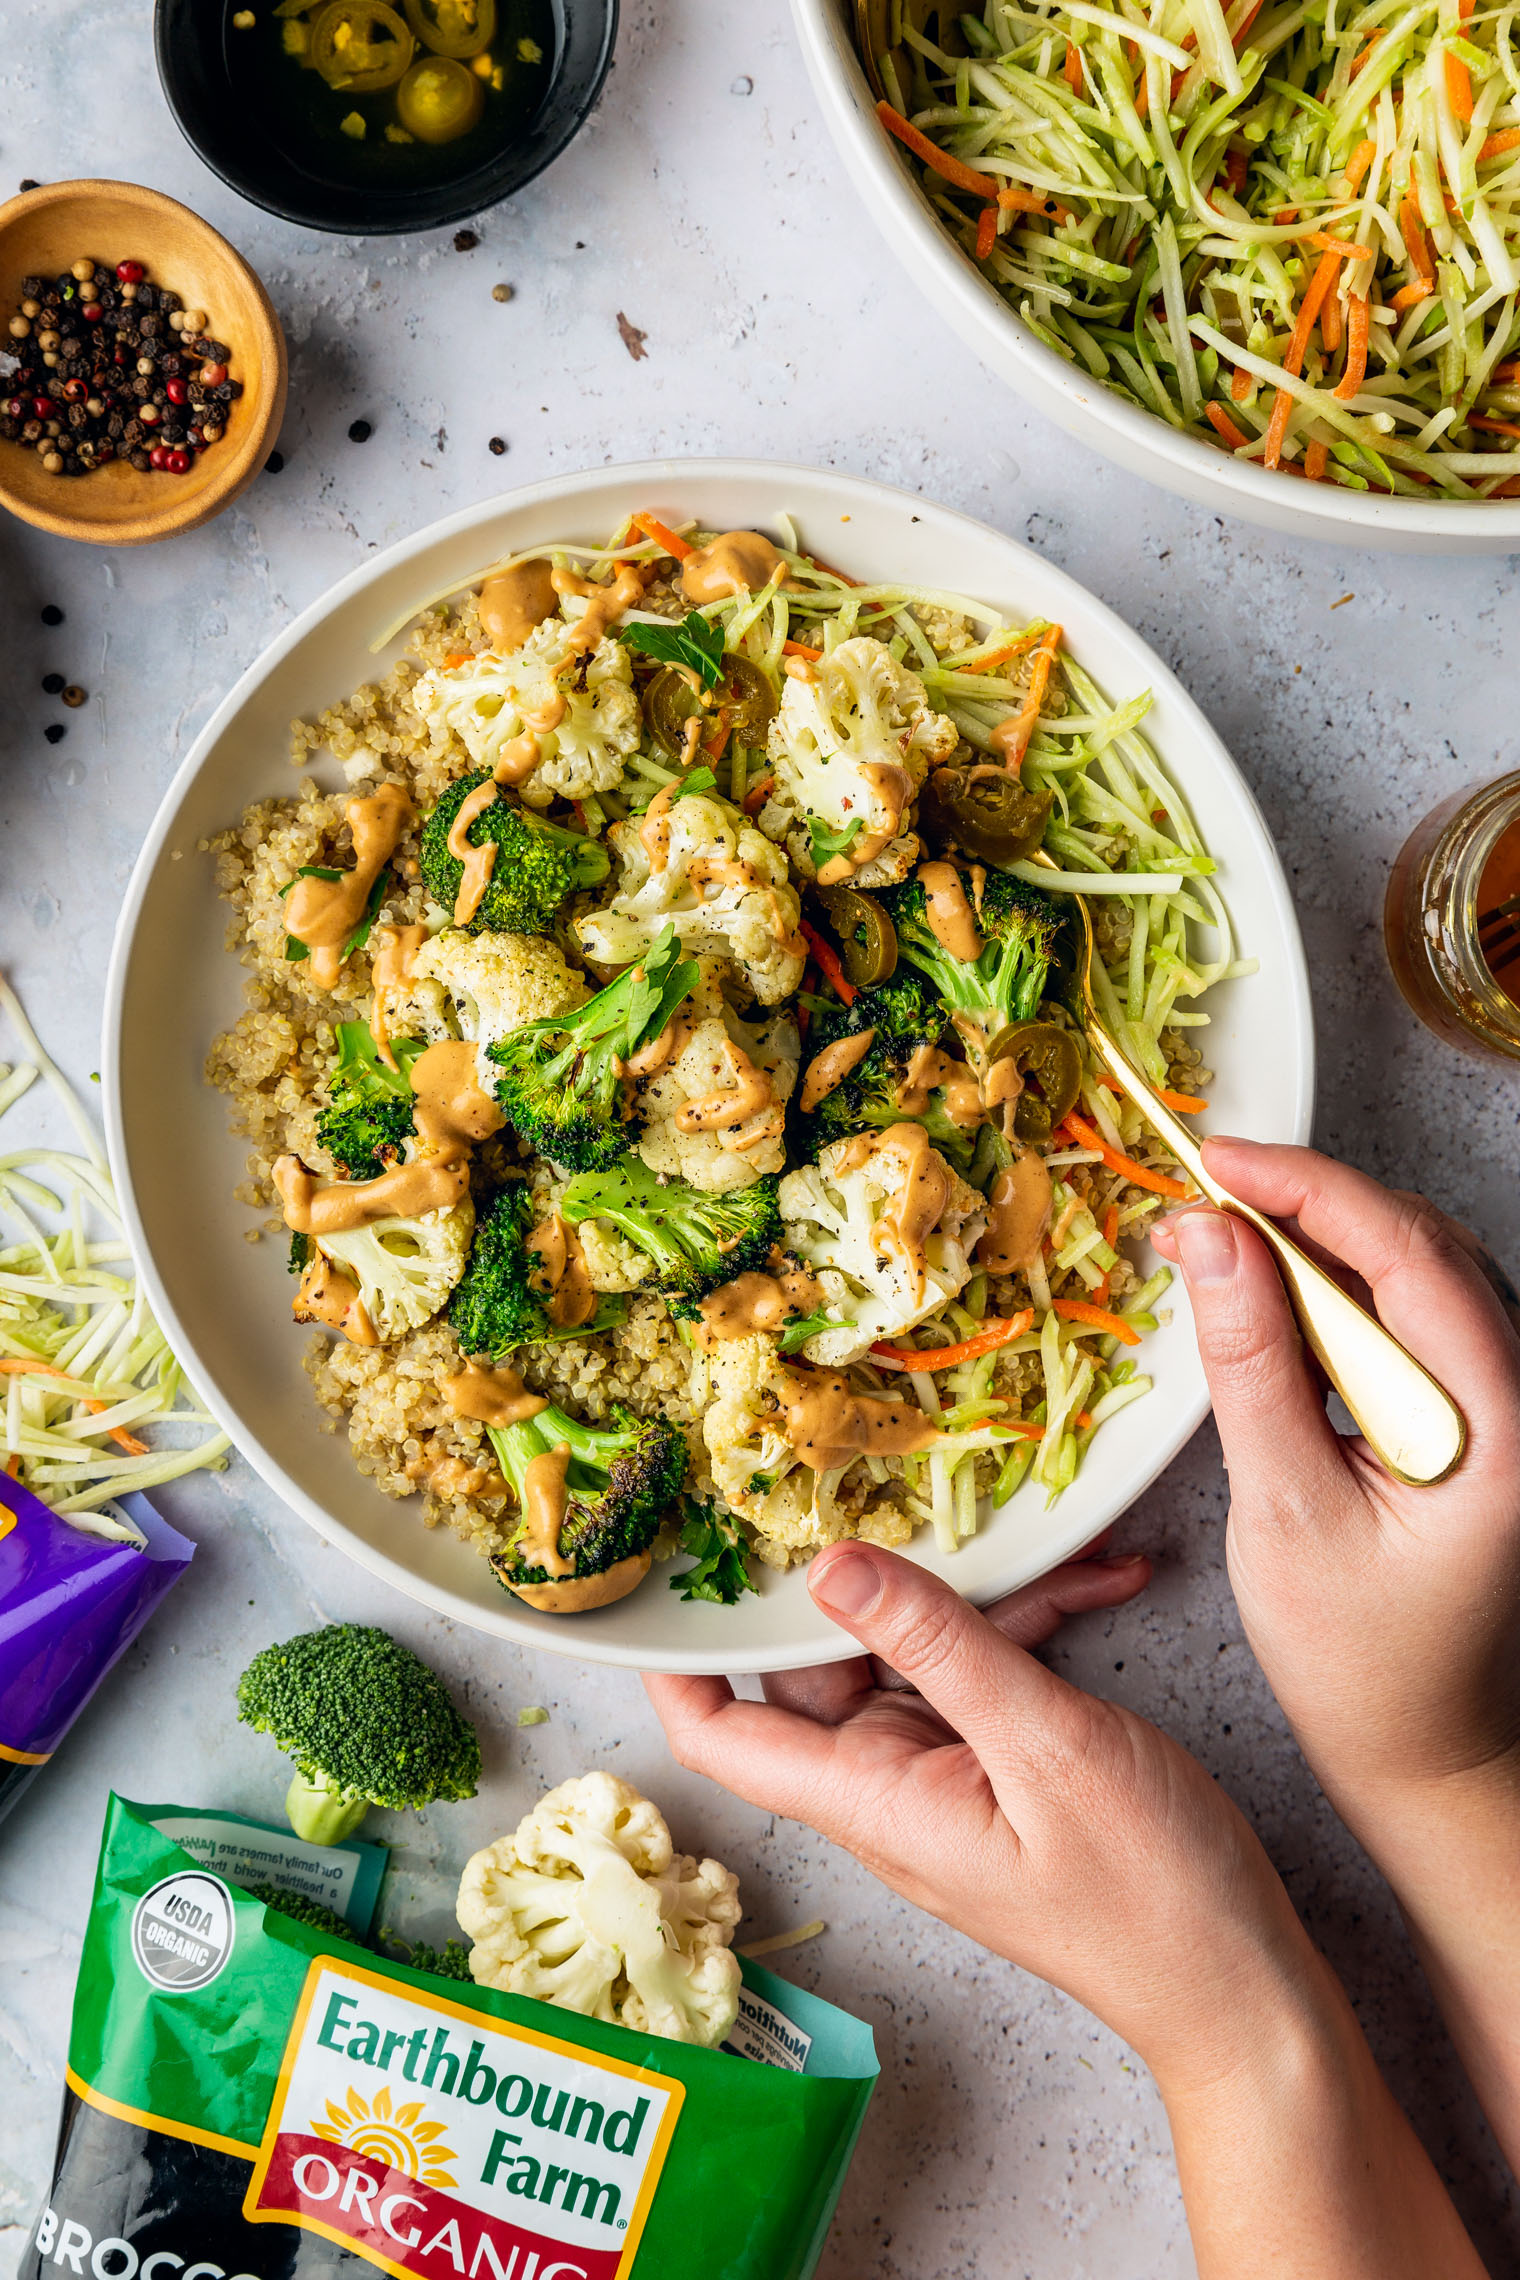 Roasted Broccoli & Cauliflower Bowl with Spicy Peanut Sauce & Tangy Jalapeno Broccoli Slaw